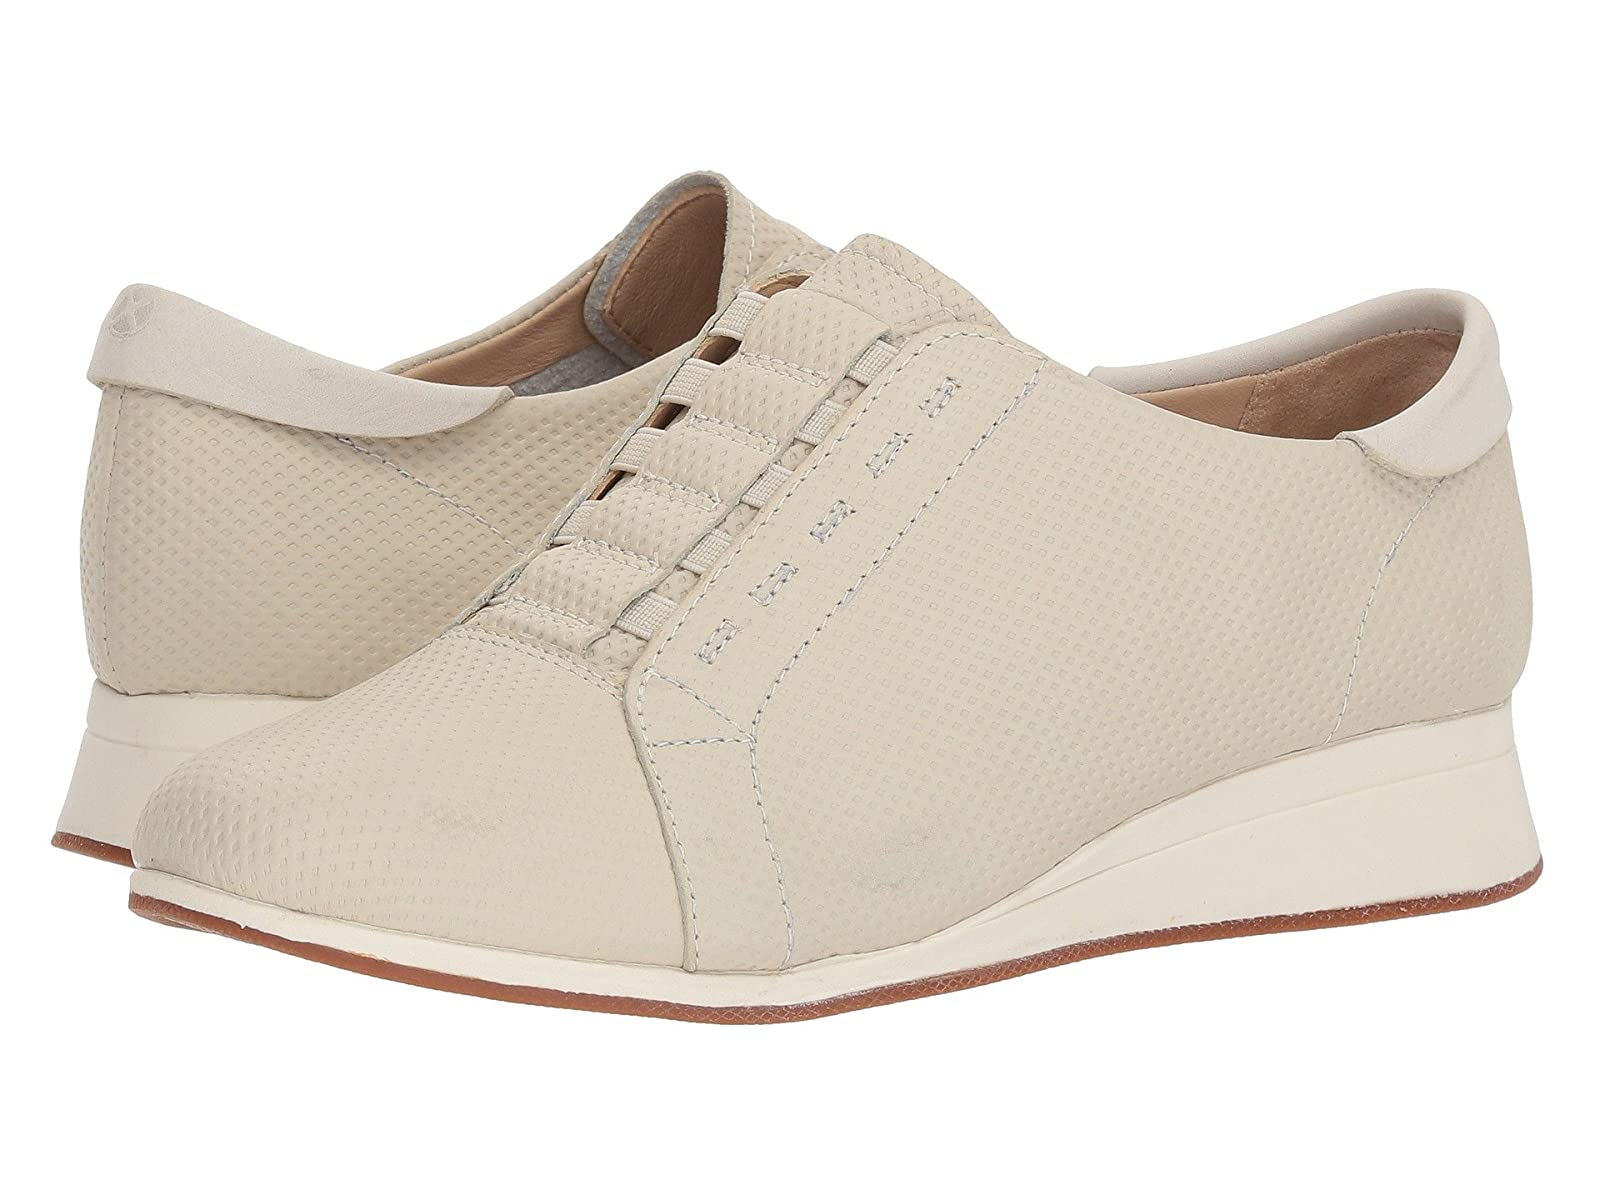 Hush Puppies Evaro Slip-On OxfordCheap and distinctive eye-catching shoes